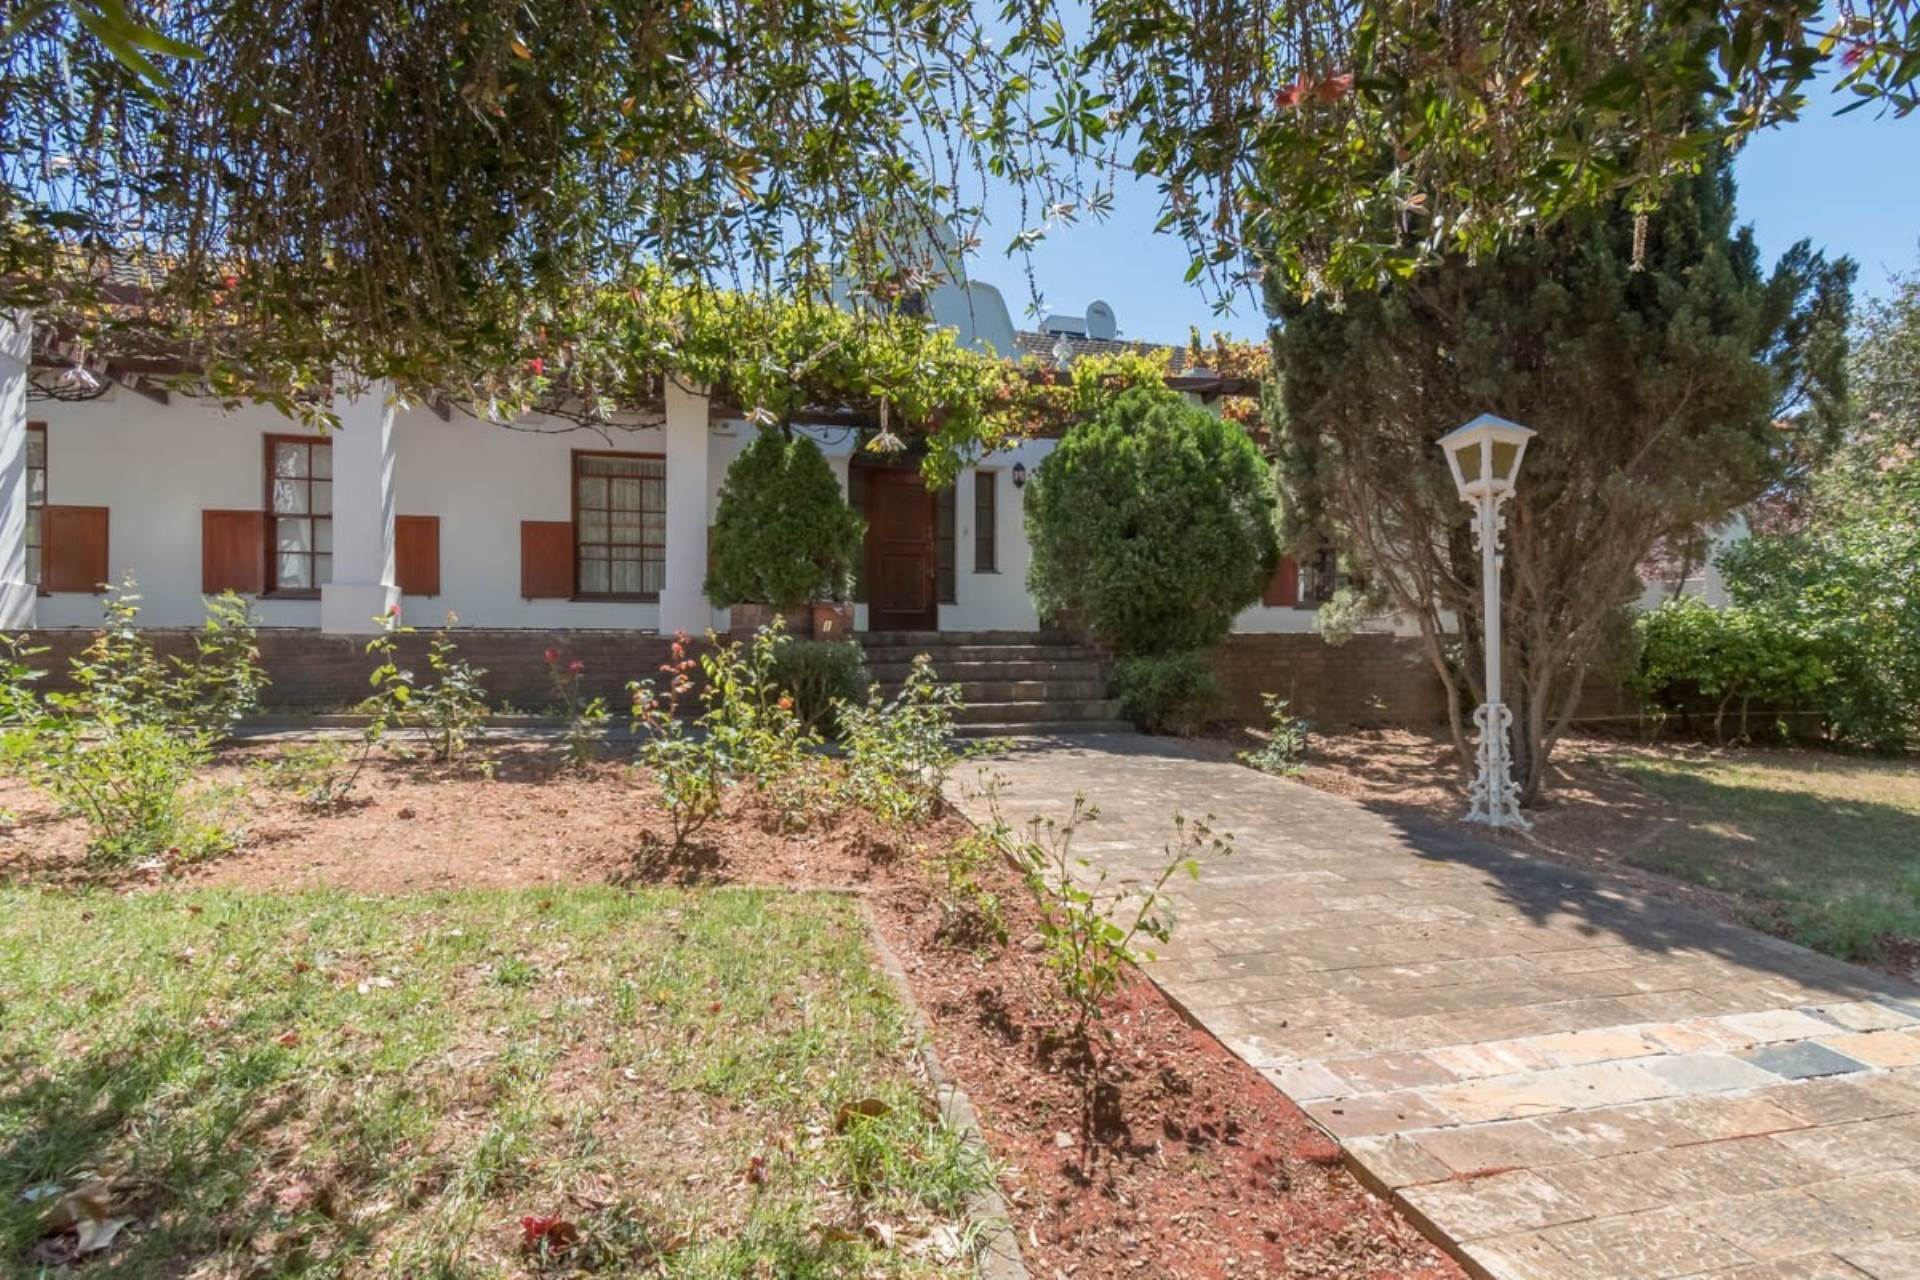 6 BedroomHouse For Sale In Durbanville Hills